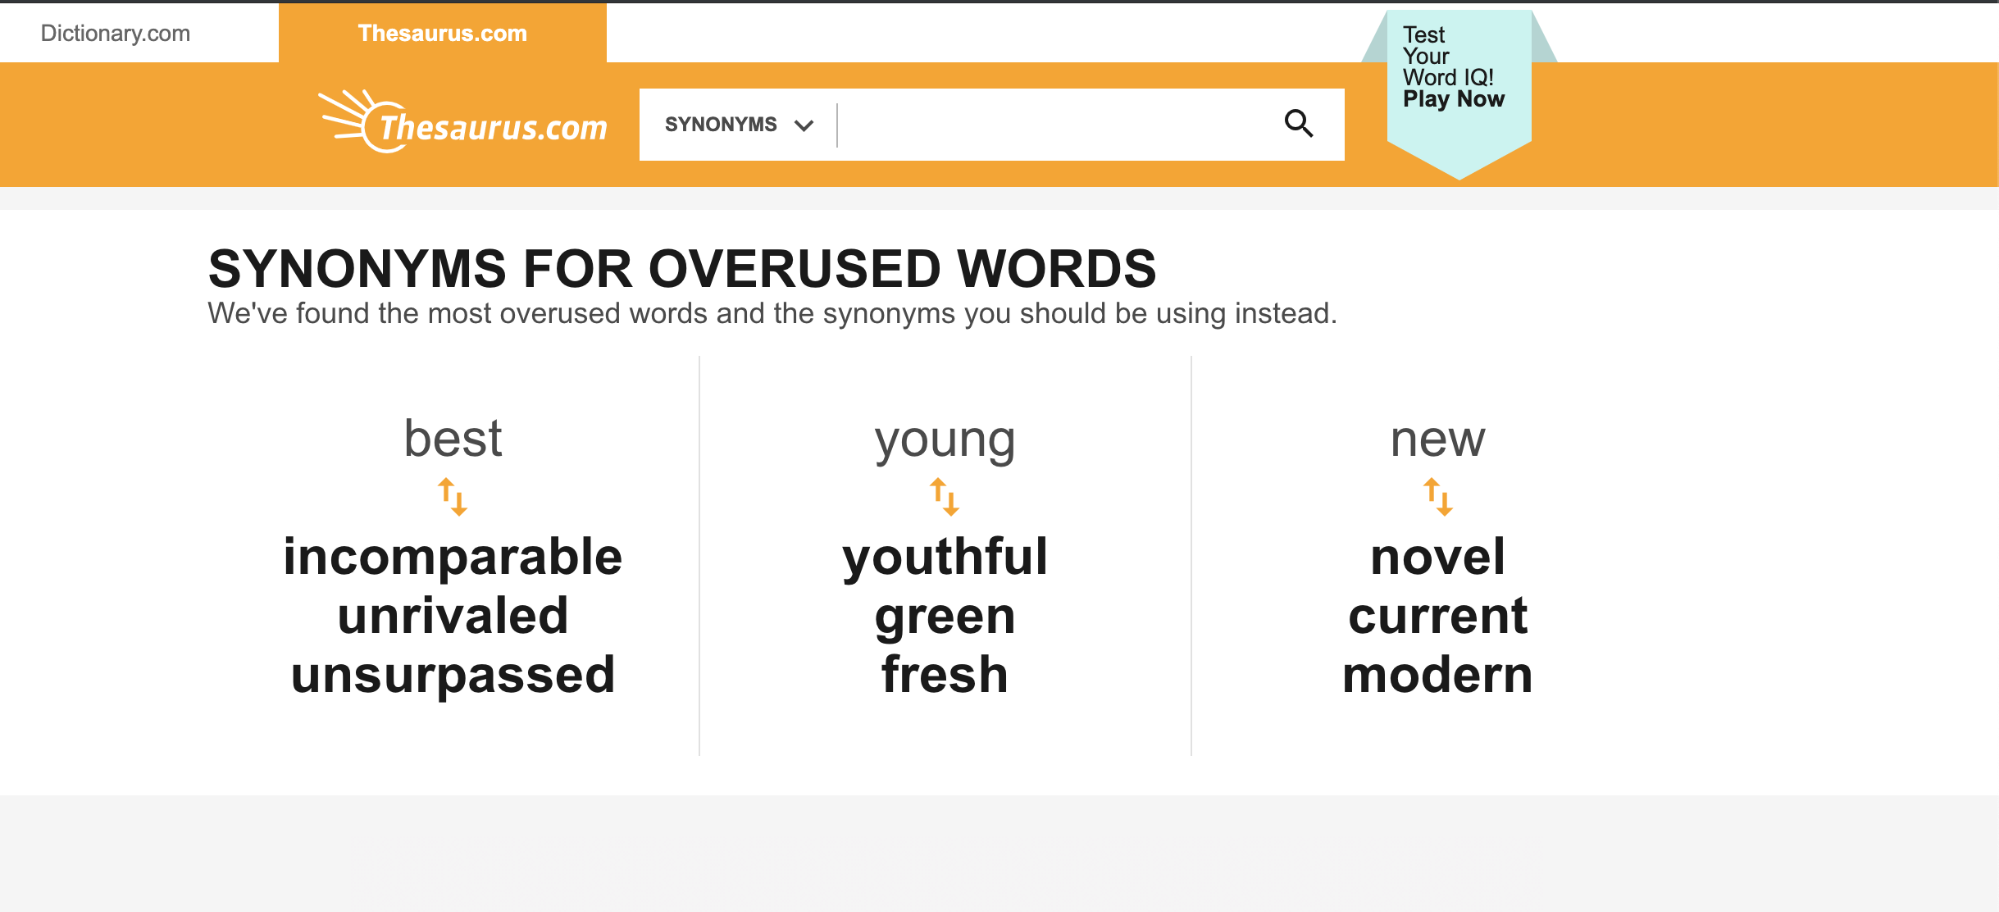 Screenshot of Thesaurus.com. This website offers synonyms to improve writing style.